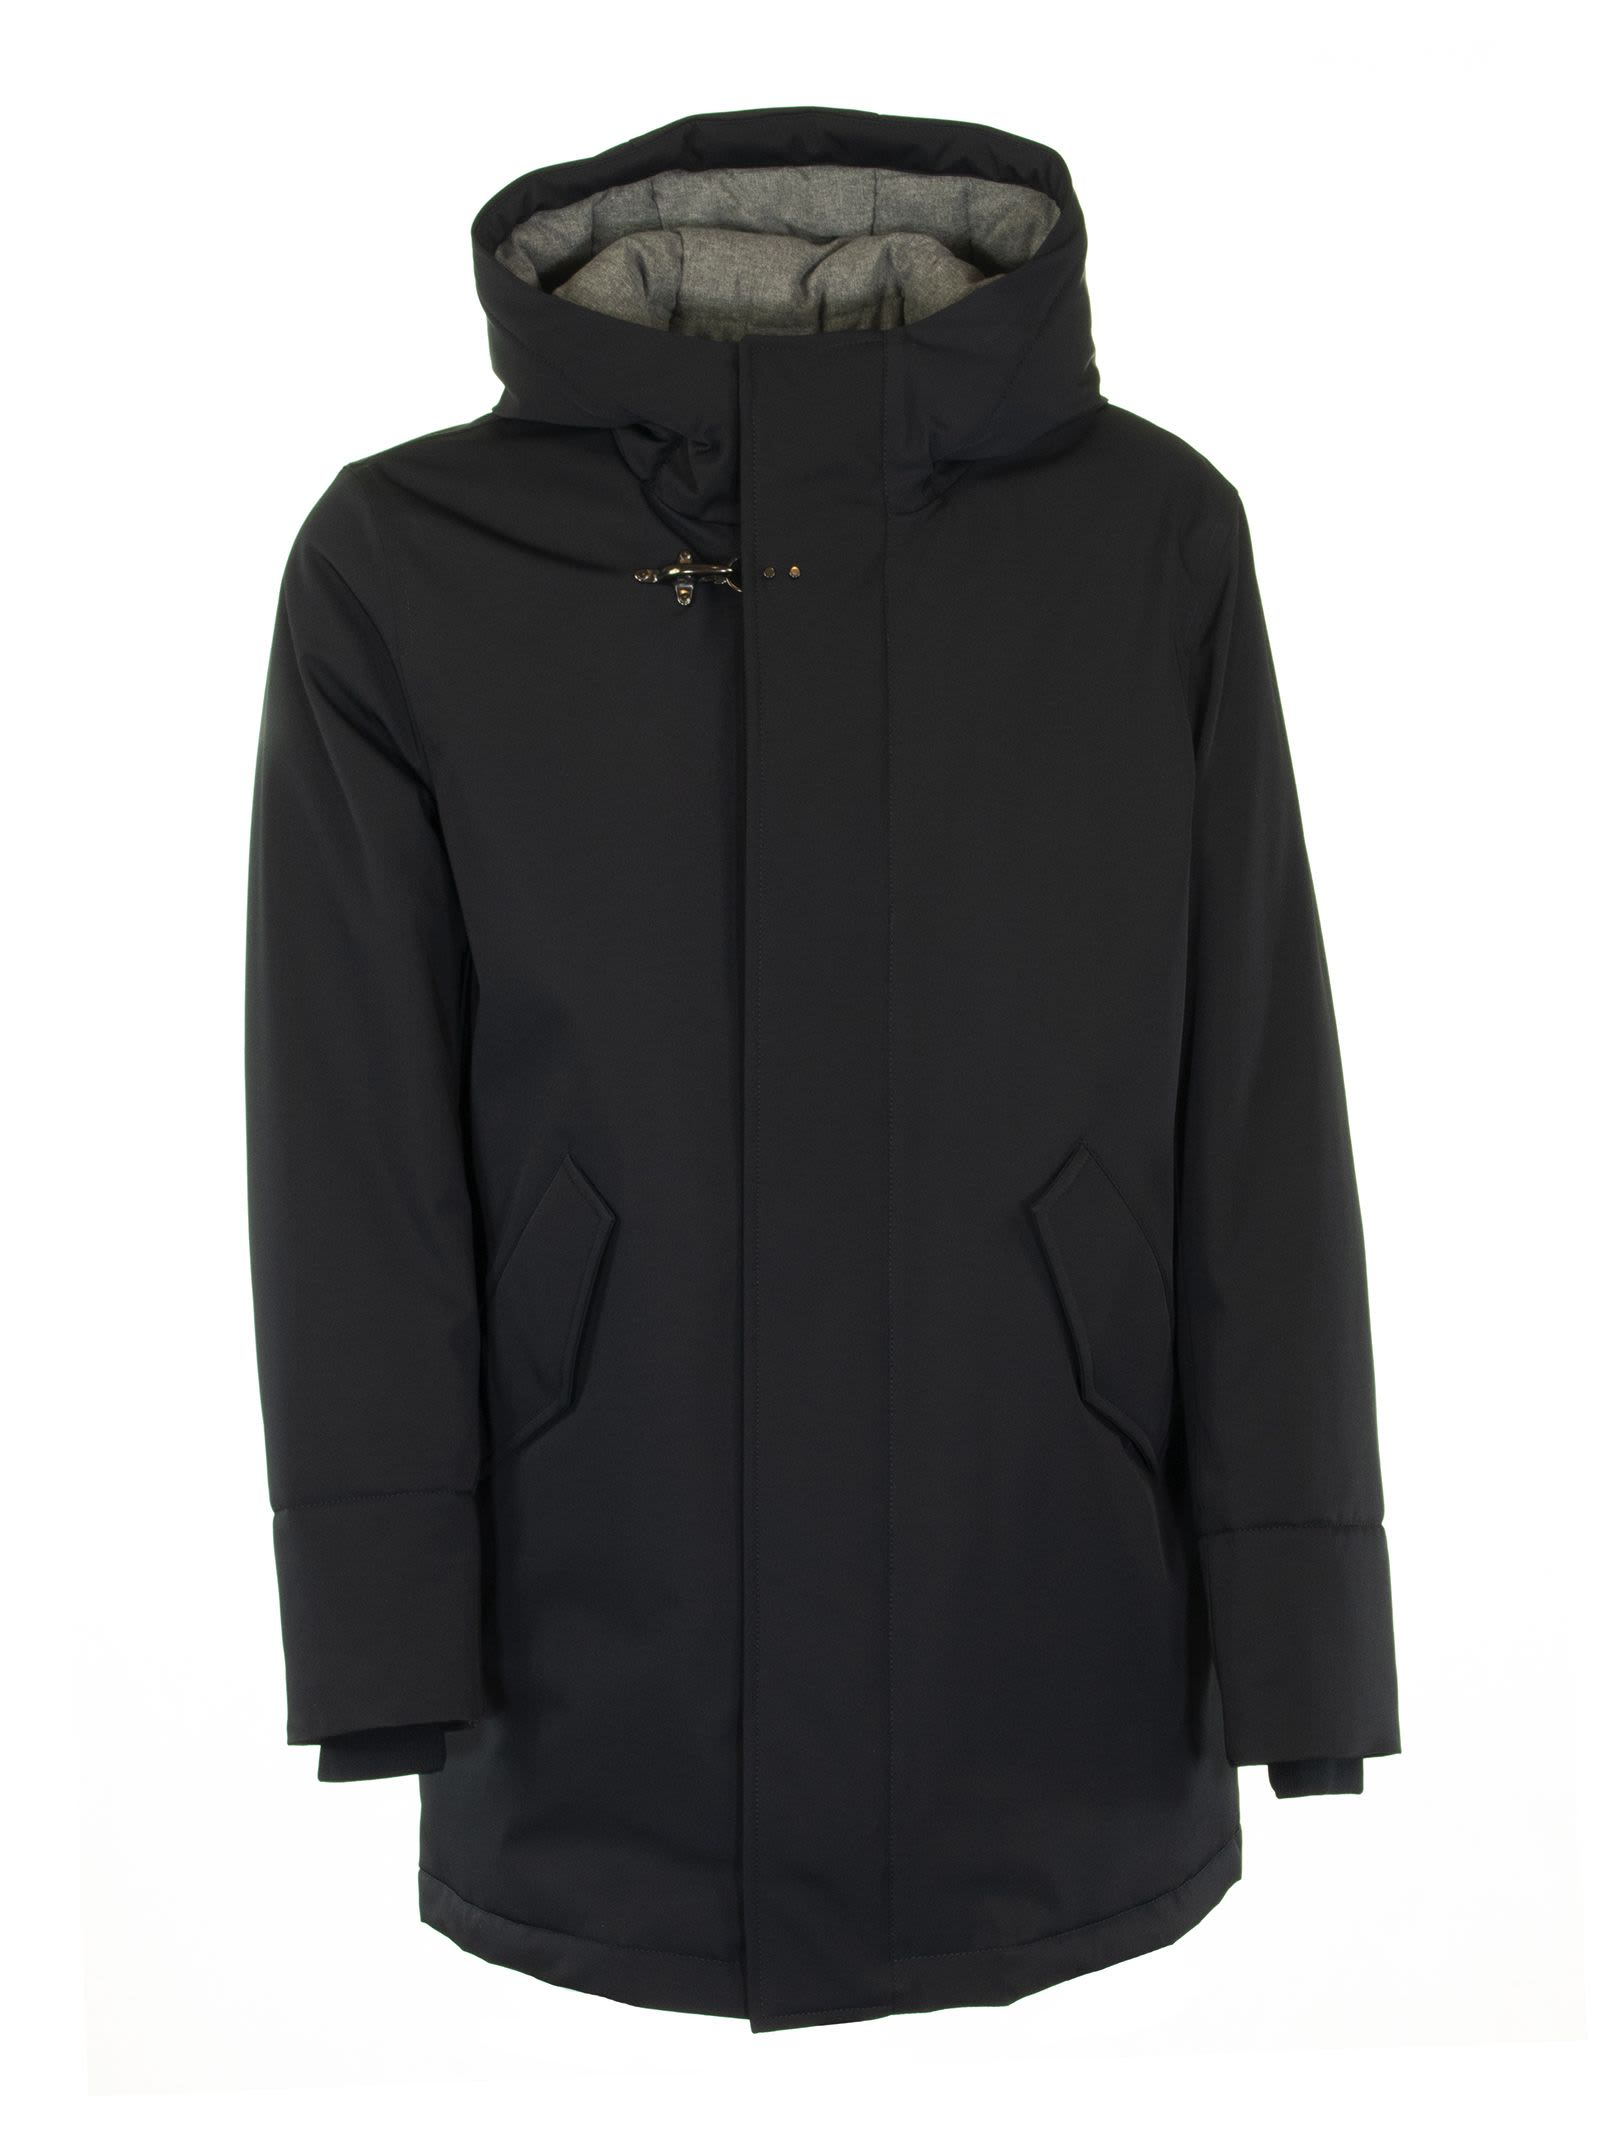 Parka crafted in high tech, padded garbadine fabric with wraparound hood, zip closing with concealed buttons, iconic Fay metal hook at the neck, slanted pockets with flaps and snap buttons. An evergreen piece with a casual feel, to face the winter in style. Composition: SHELL: 93%POLYESTER 7% ELASTANE LINING: 100% POLYESTER FILLING: 100% POLYESTER